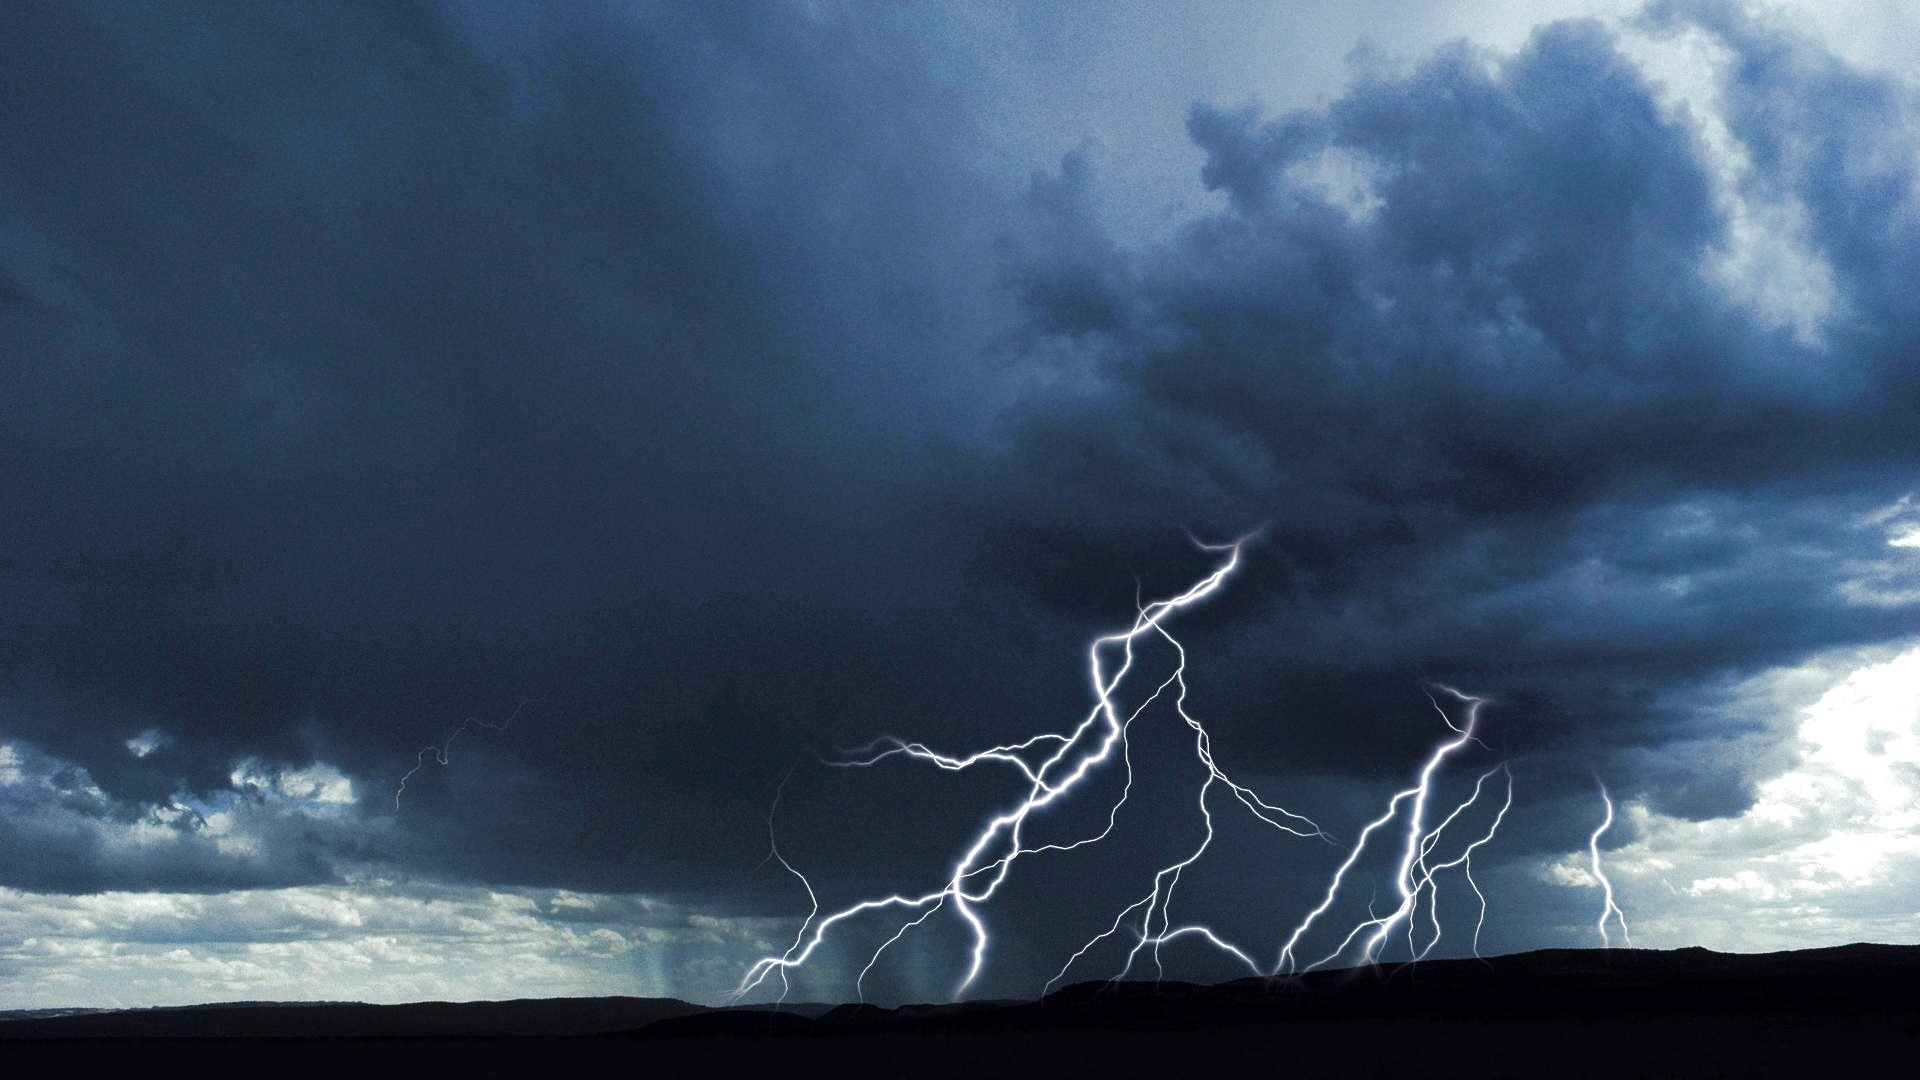 Res: 1920x1080, ... Sky Thunderstorm Clouds Rain Storm Lightning Nature 3d Wallpaper  Android Download Detail ...